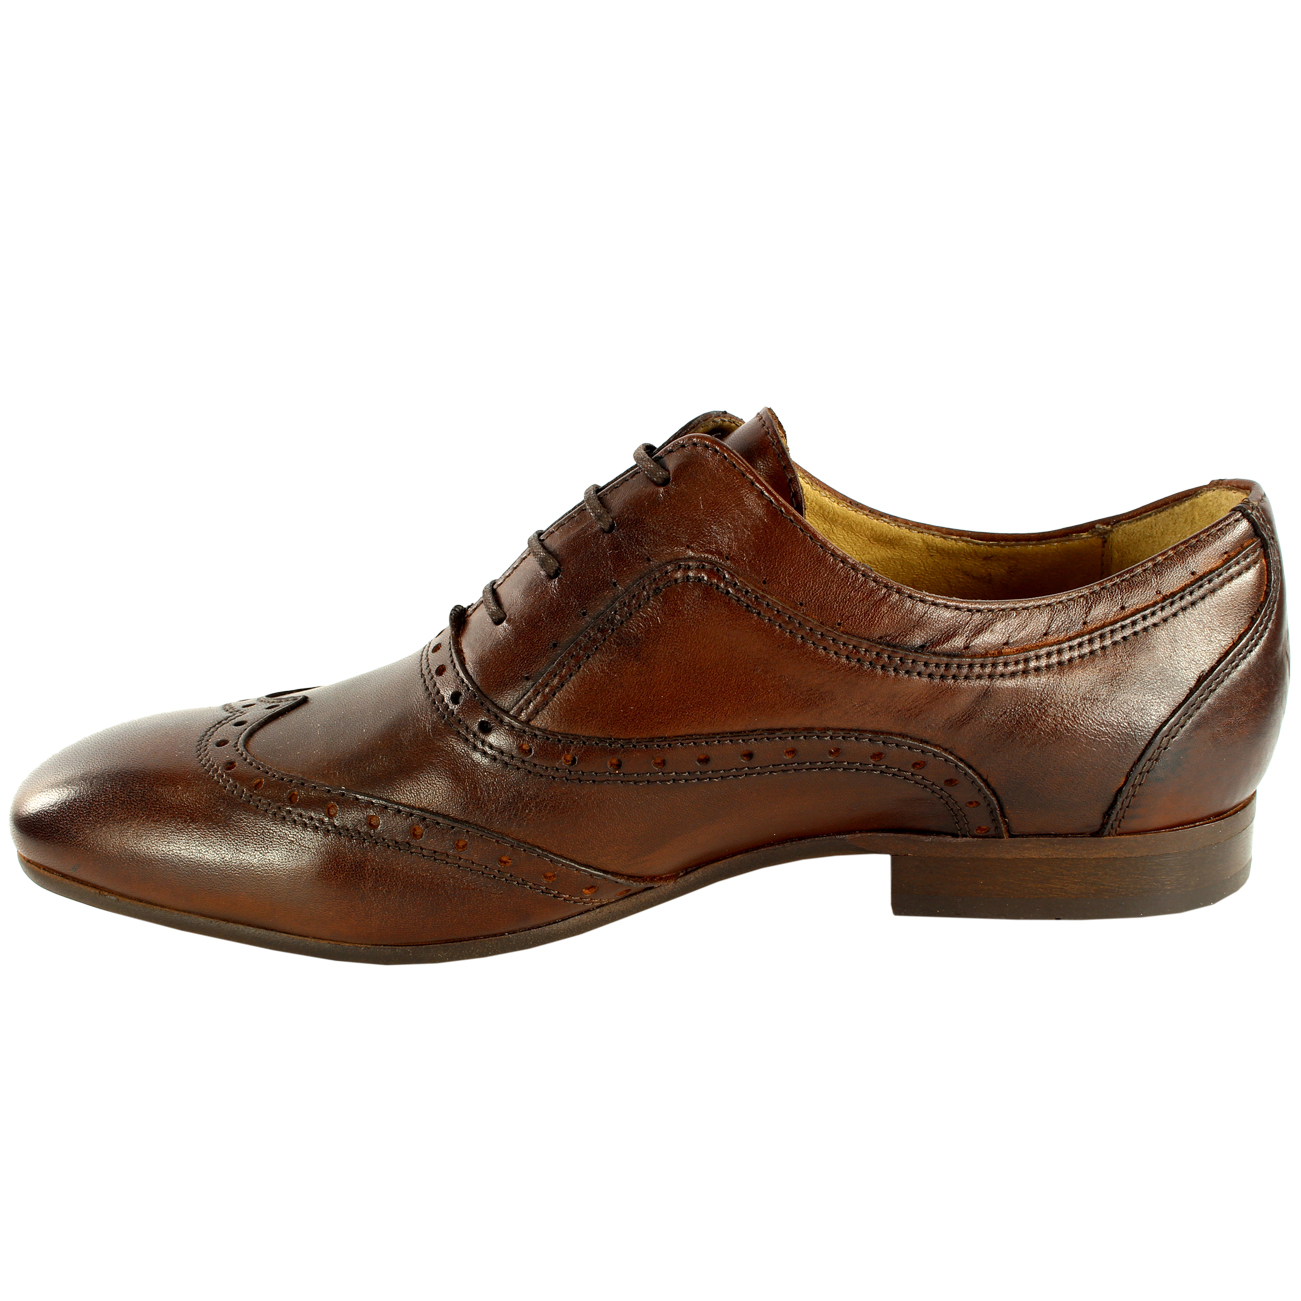 Uomo H By Up Hudson Francis Brogue Lace Up By Formal Smart Leder Schuhes New All Größes fccfb5